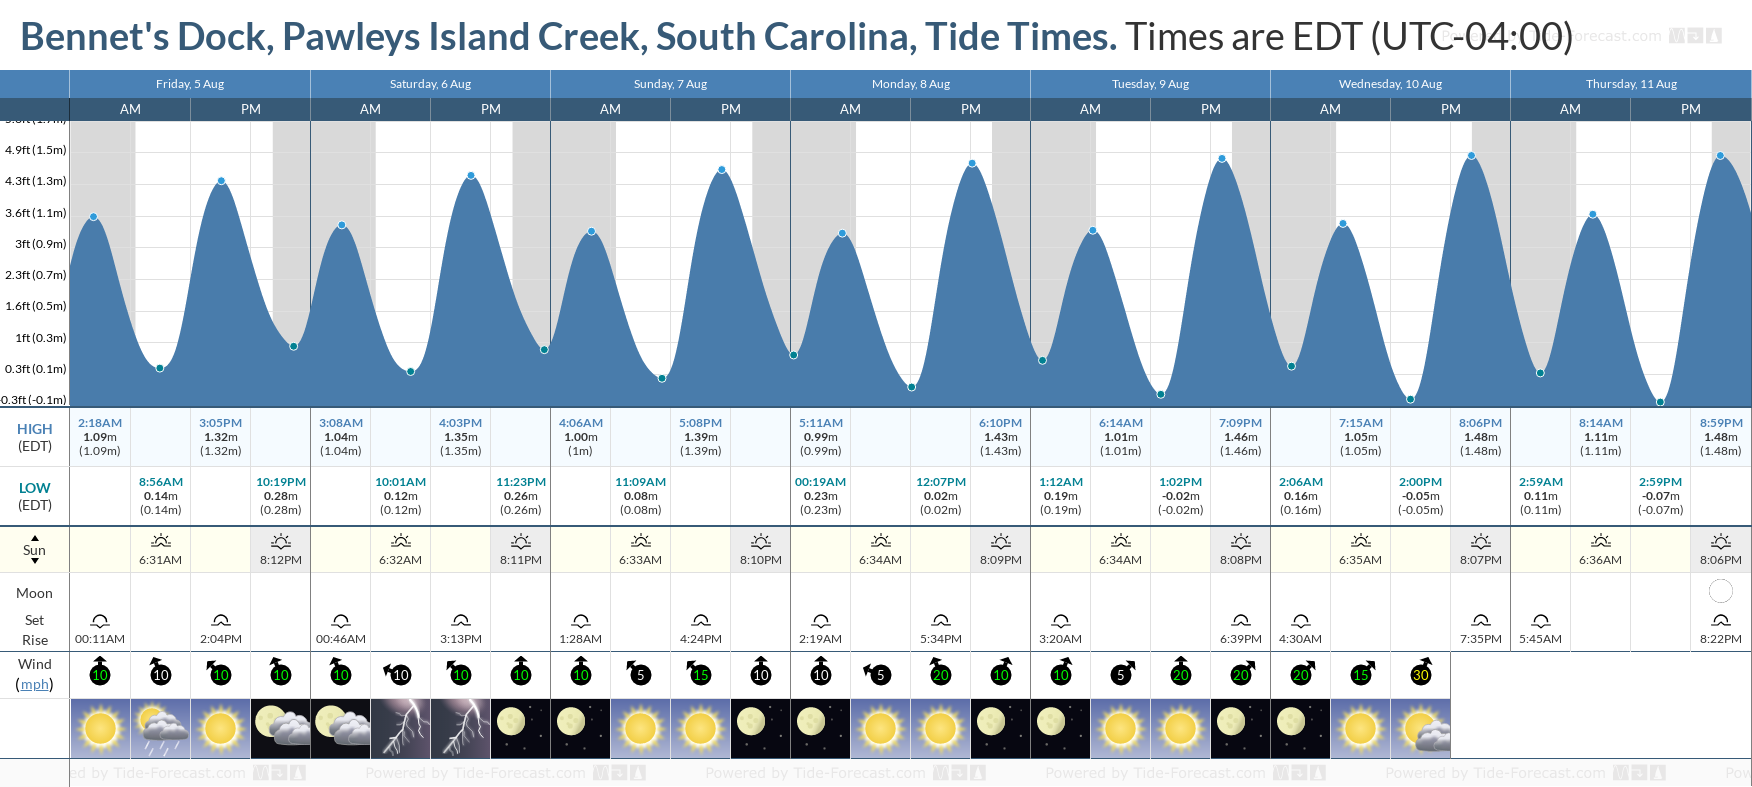 Bennet's Dock, Pawleys Island Creek, South Carolina Tide Chart including high and low tide tide times for the next 7 days